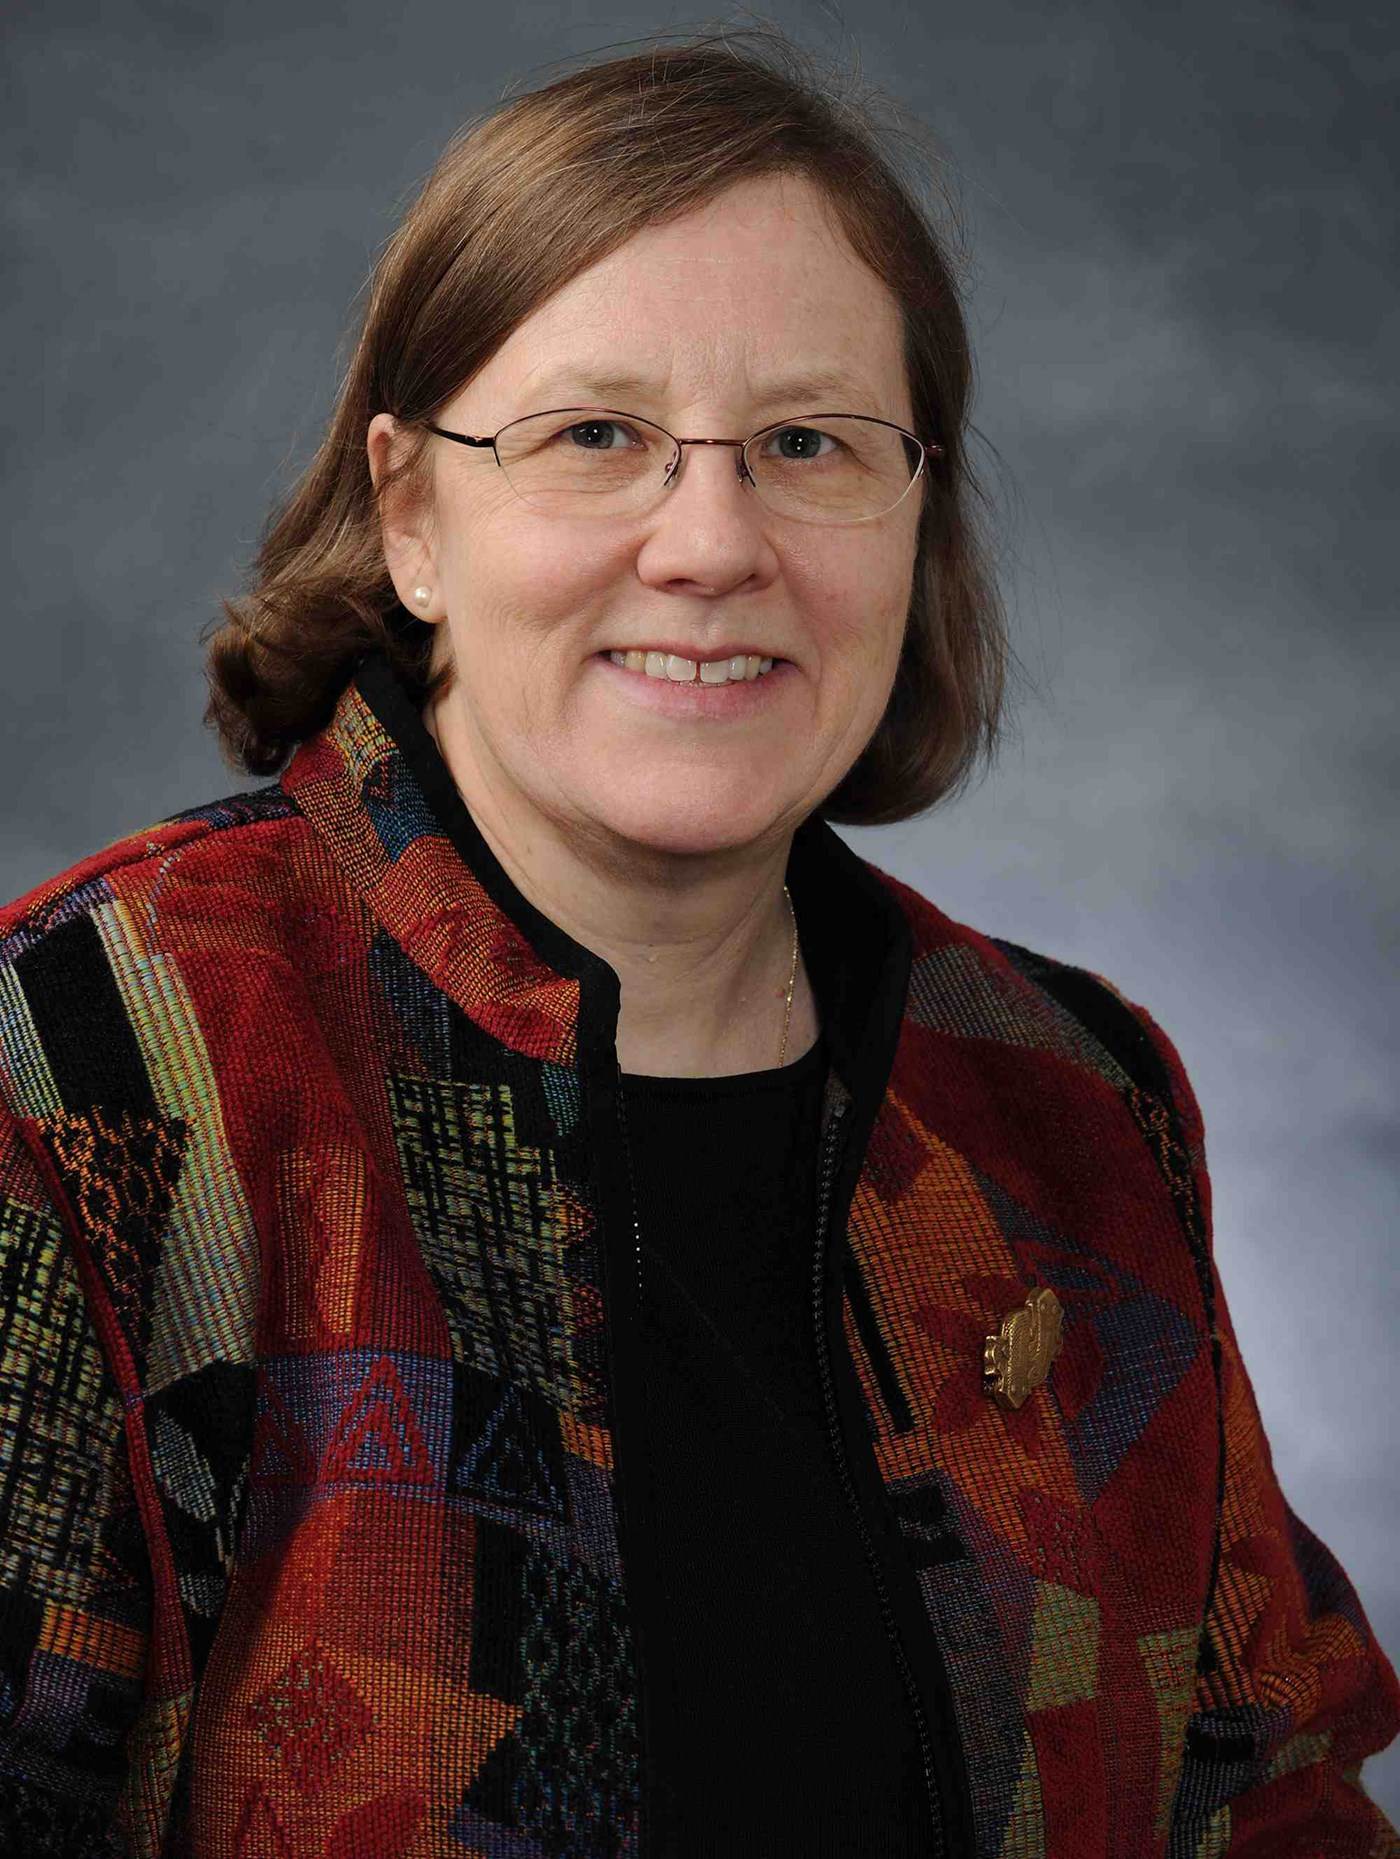 Janet Schrenk is an Associate Teaching Professor in the Chemistry Department at UMass Lowell.